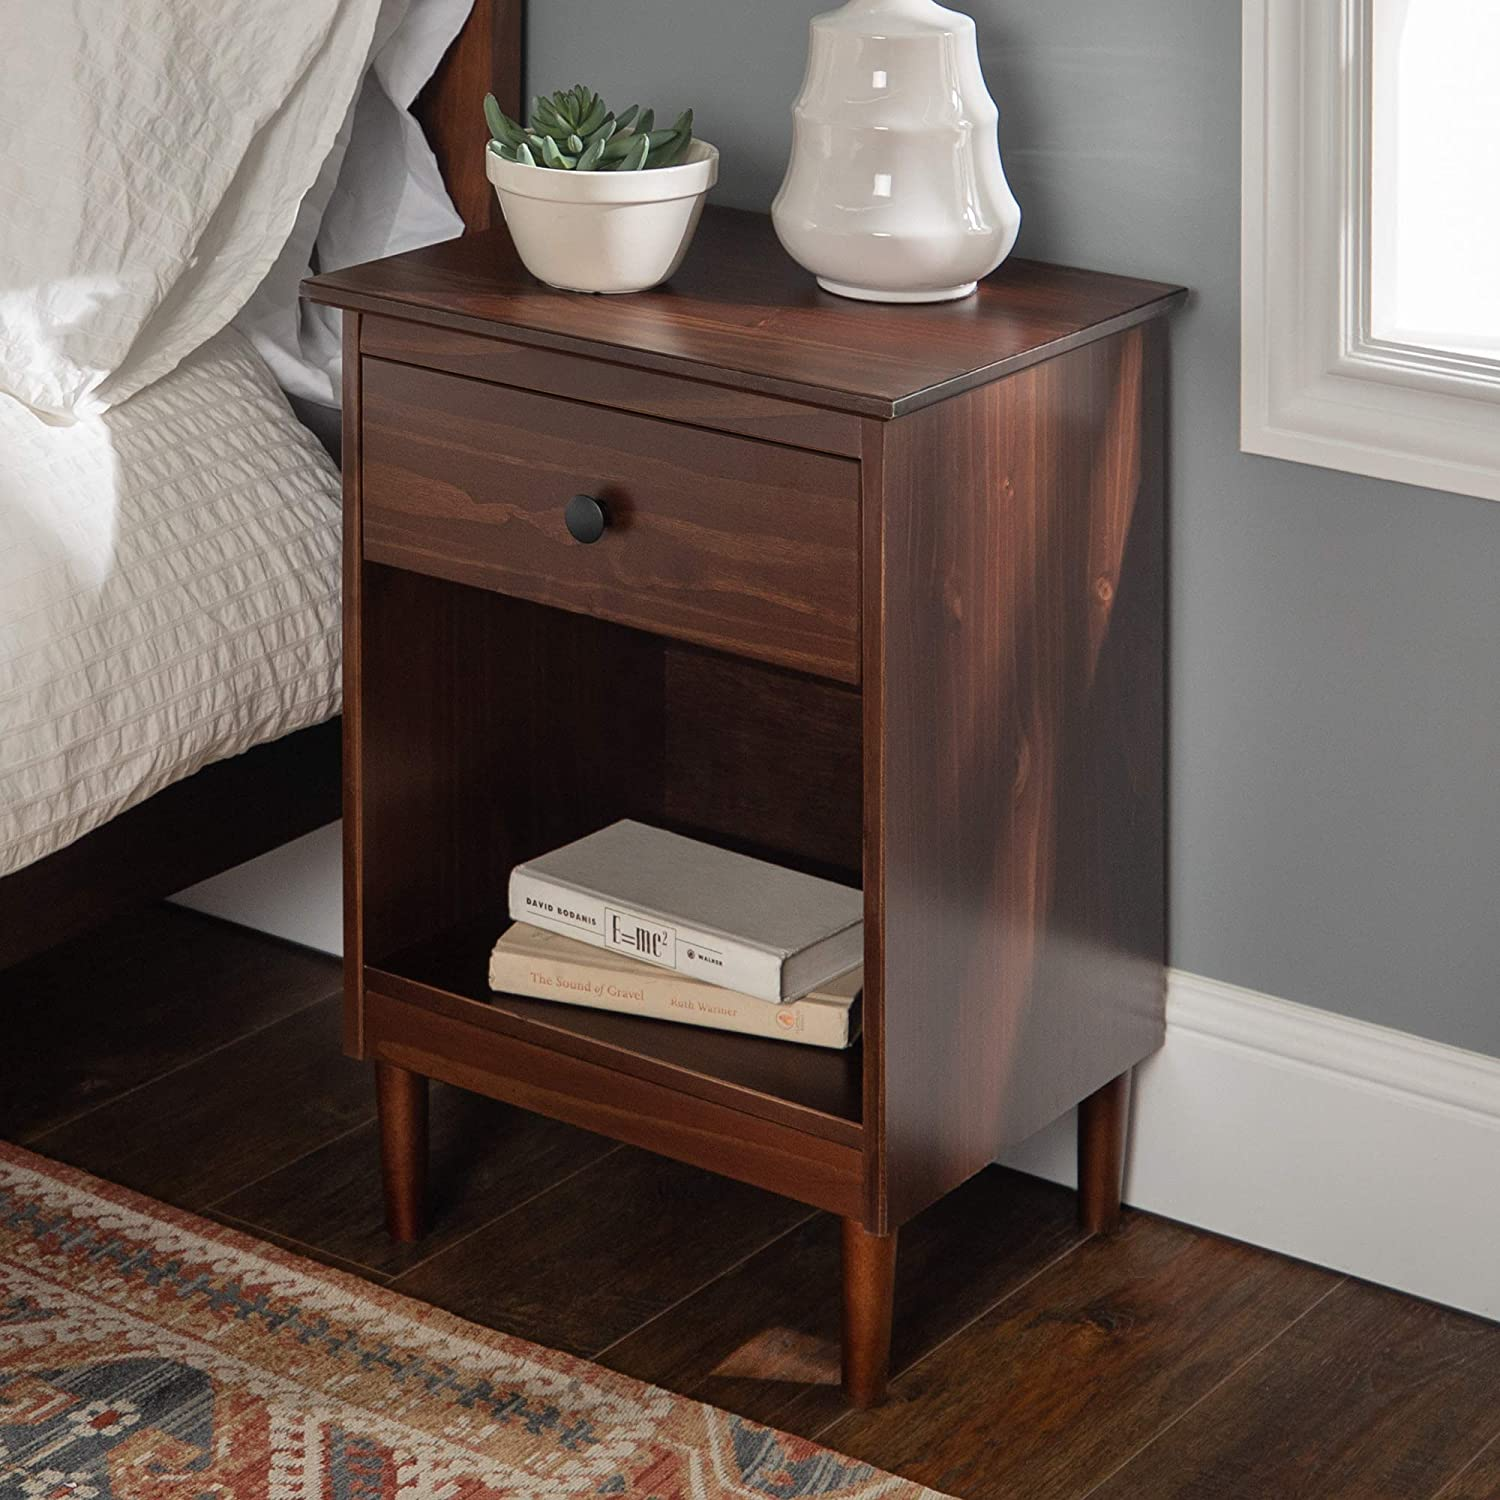 Walker Edison Furniture Company Traditional Wood 1 Nightstand Side Bedroom Storage Drawer and Shelf Bedside End Table, 18 Inch, Walnut Brown